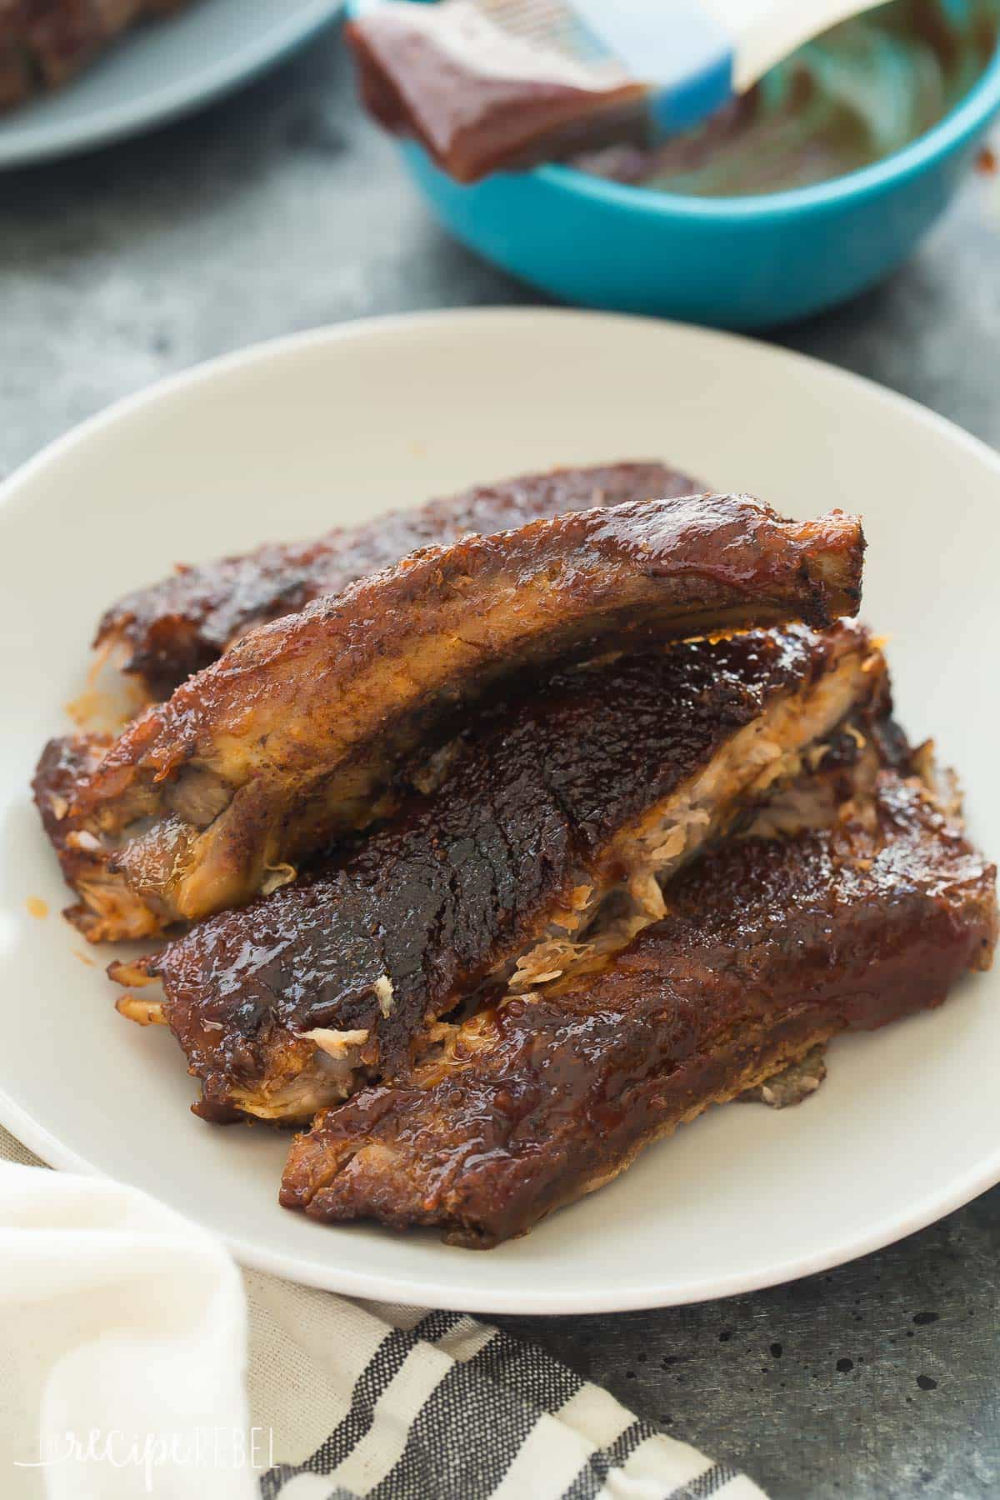 These Easy Slow Cooker BBQ Ribs couldn't be simpler! They